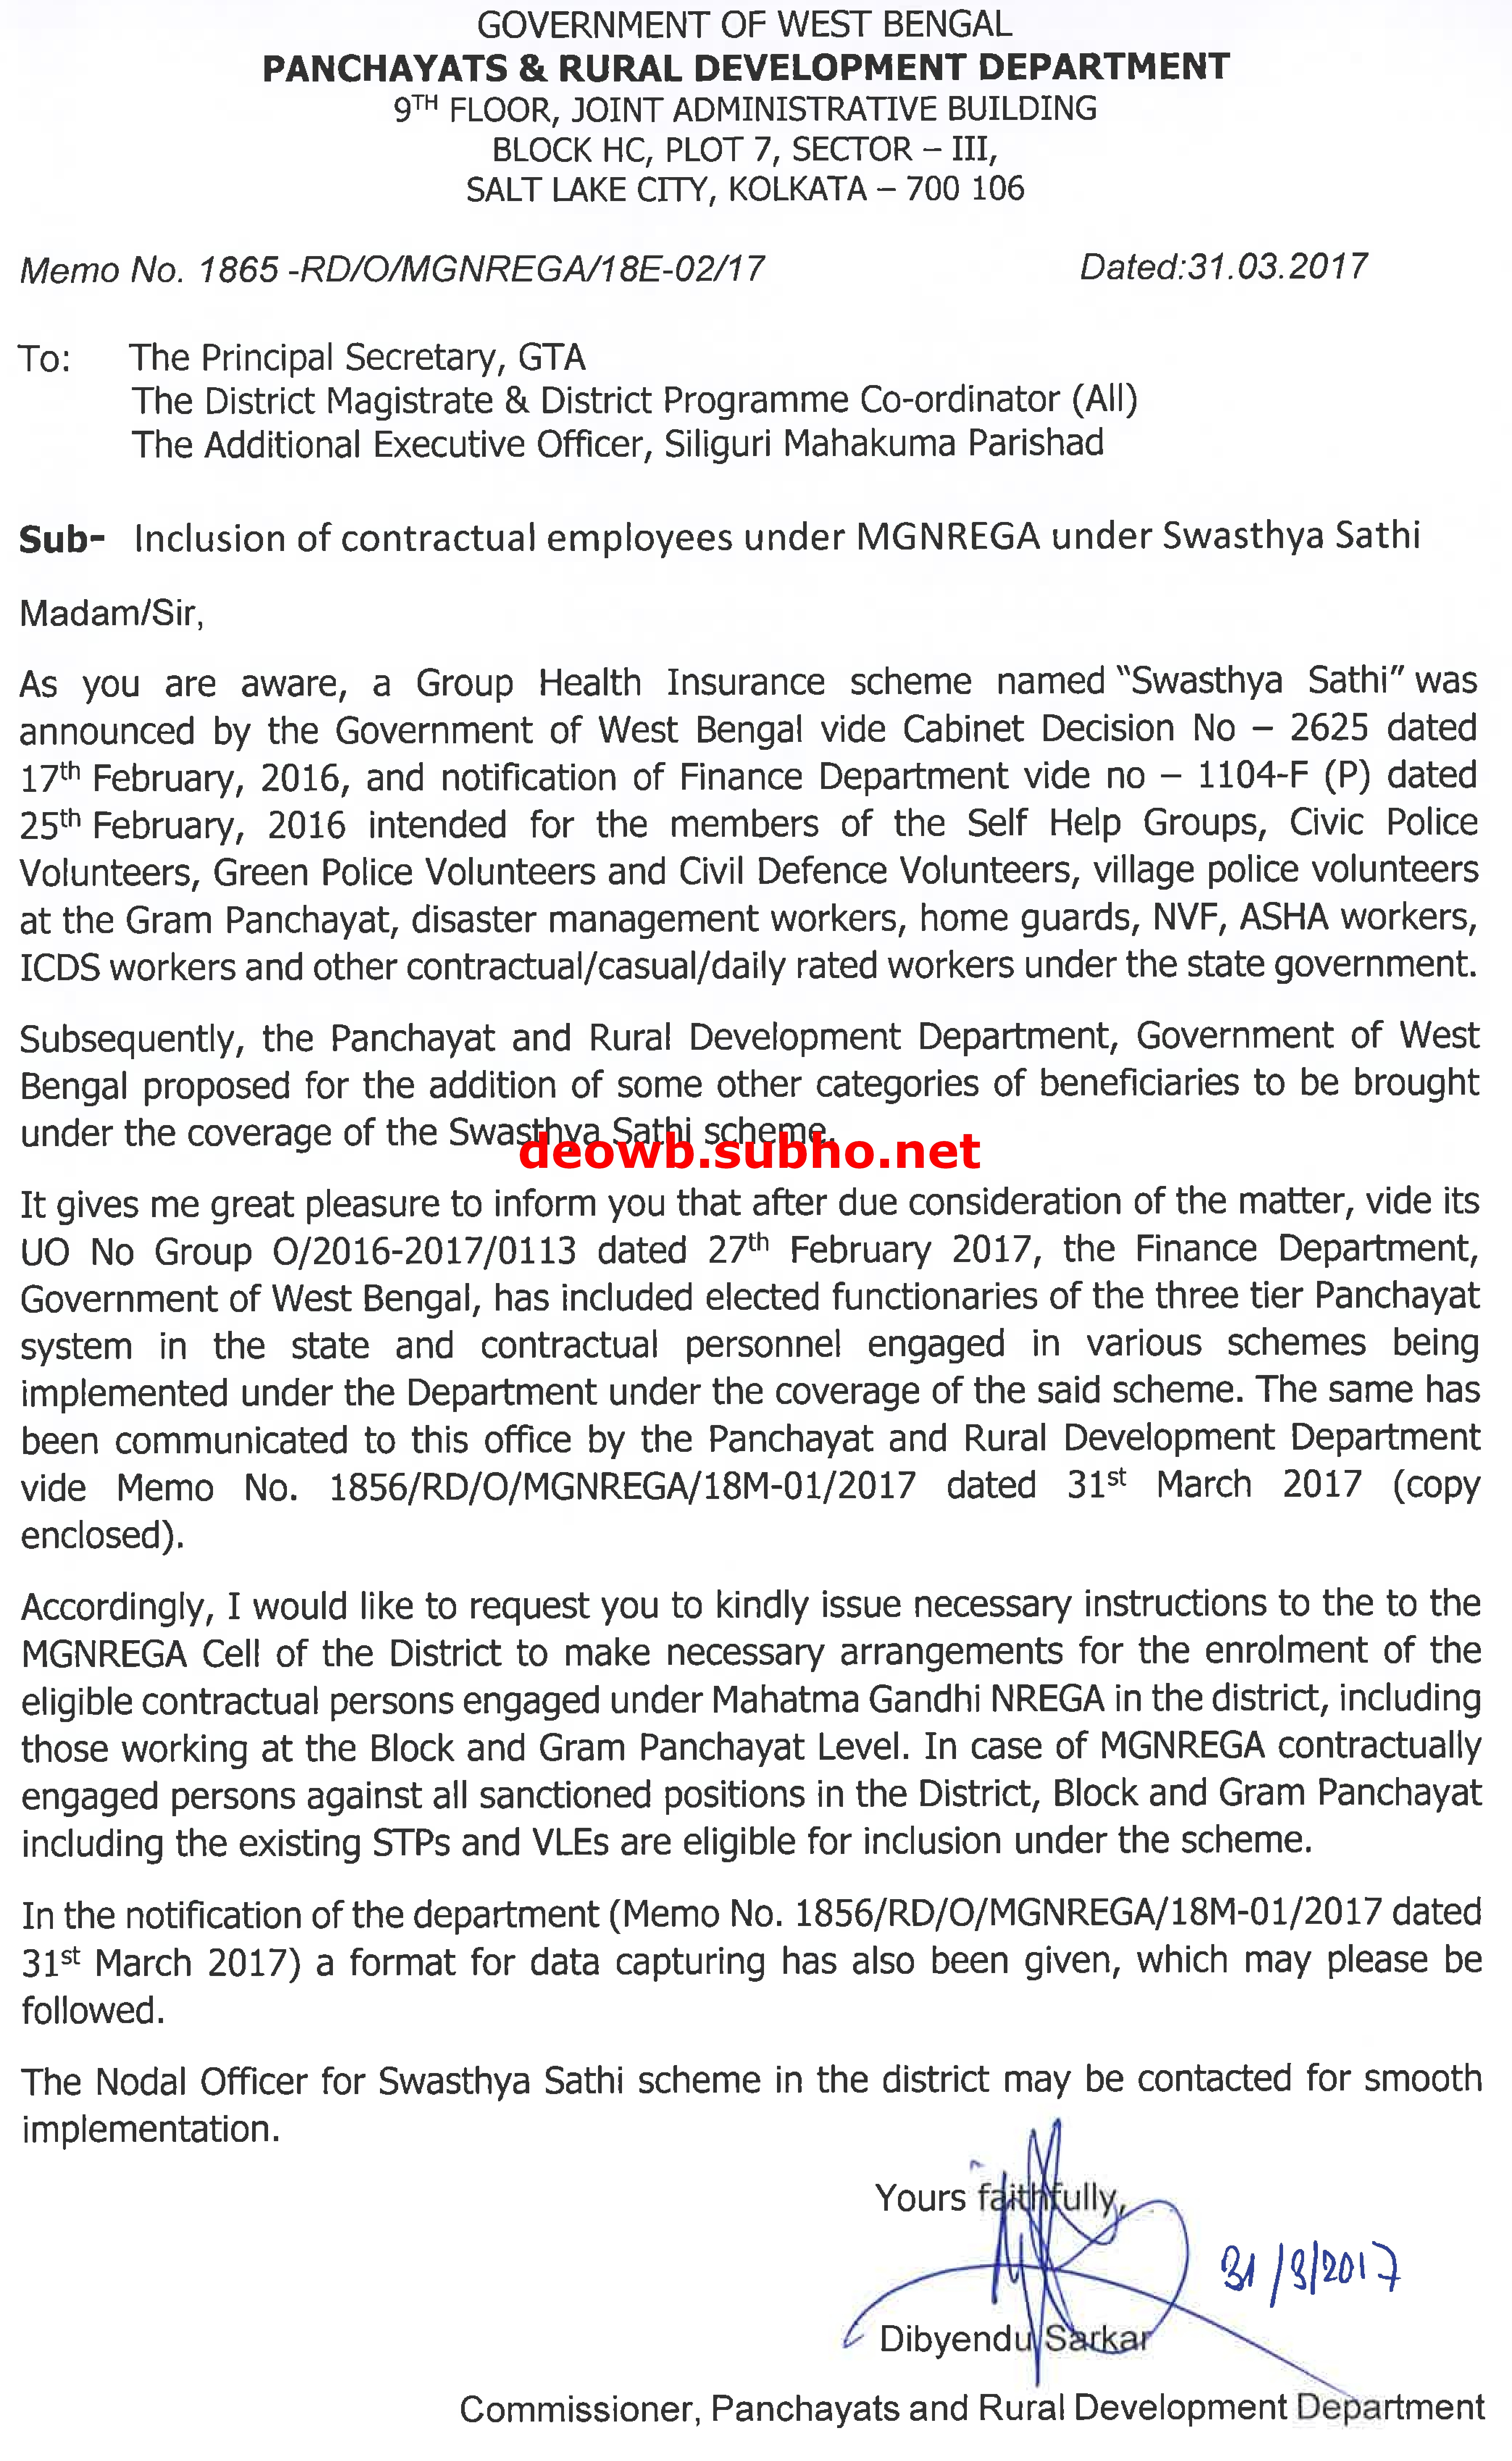 DEO VLE STP INCLUDED INTO SWASTHYA SATHI